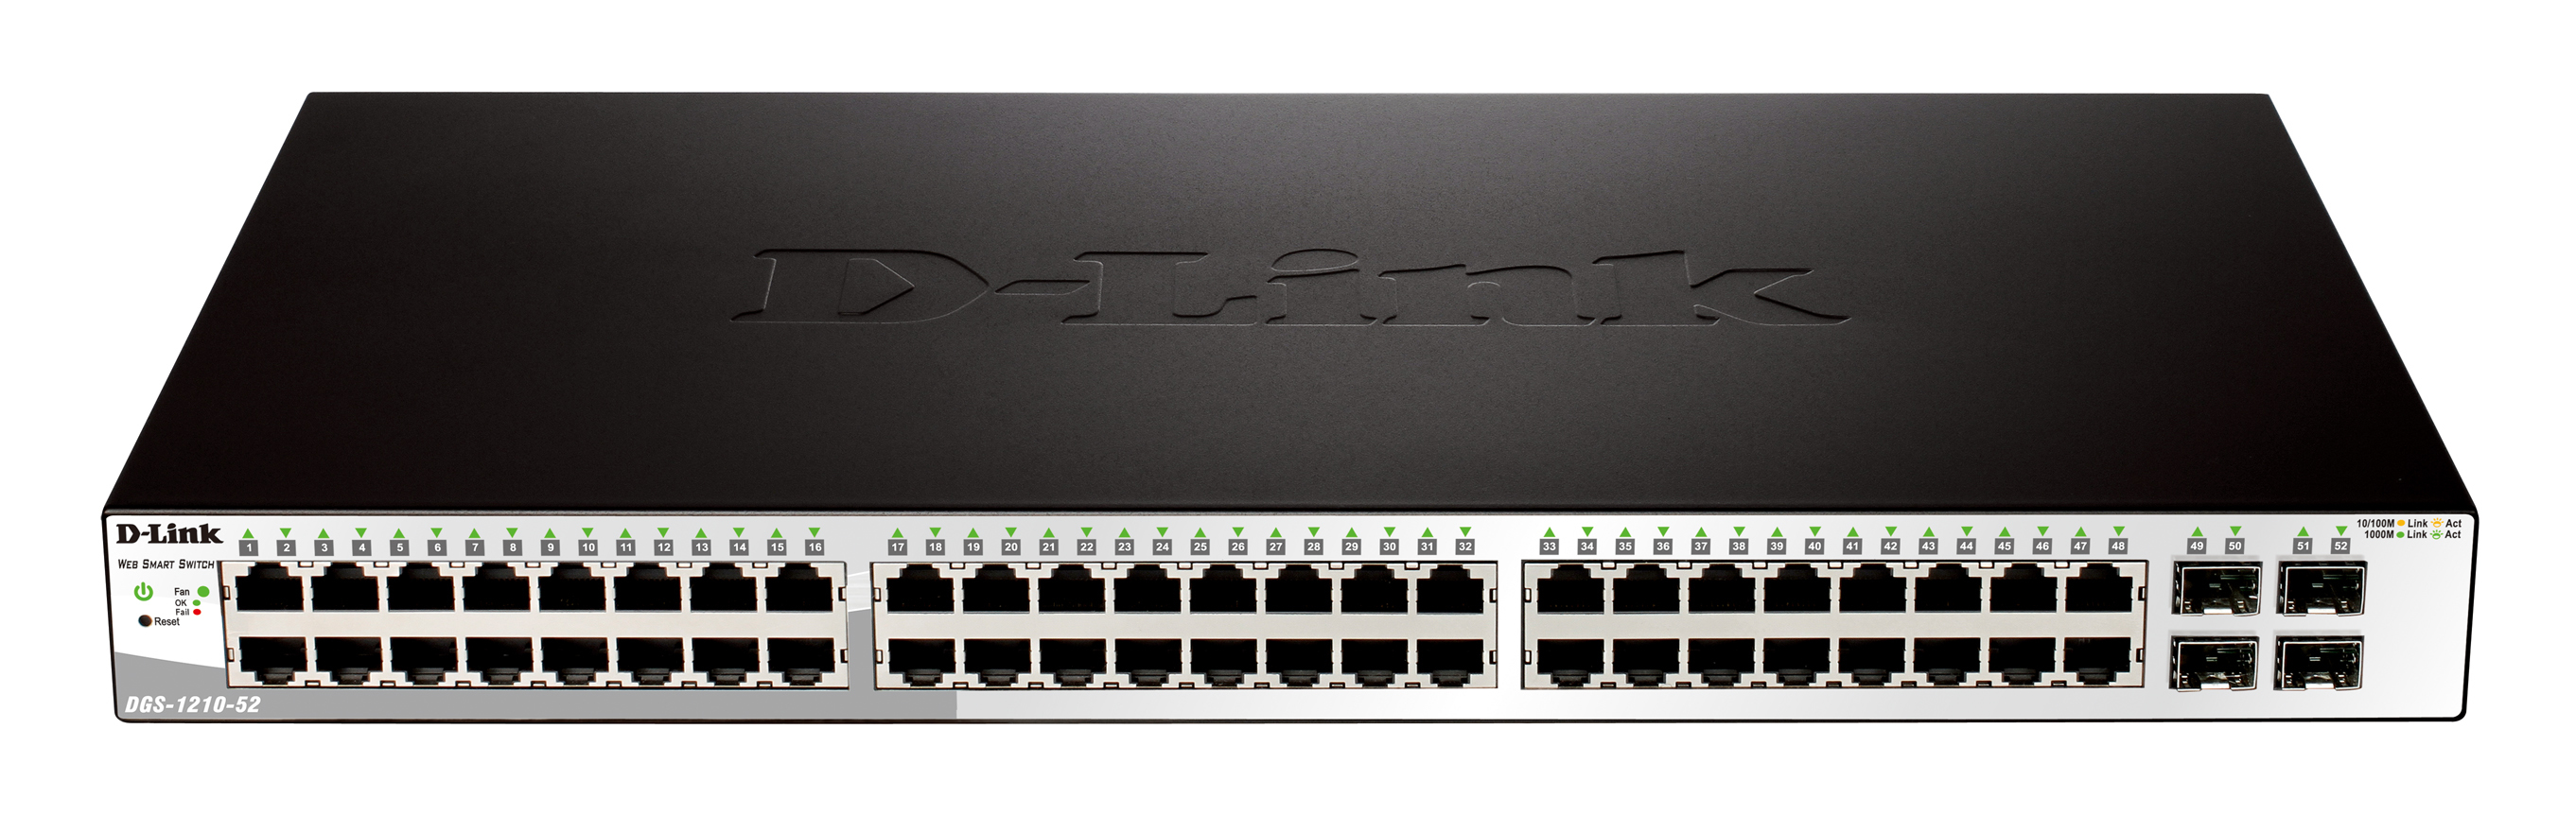 D-Link DGS-1210-52P network switch